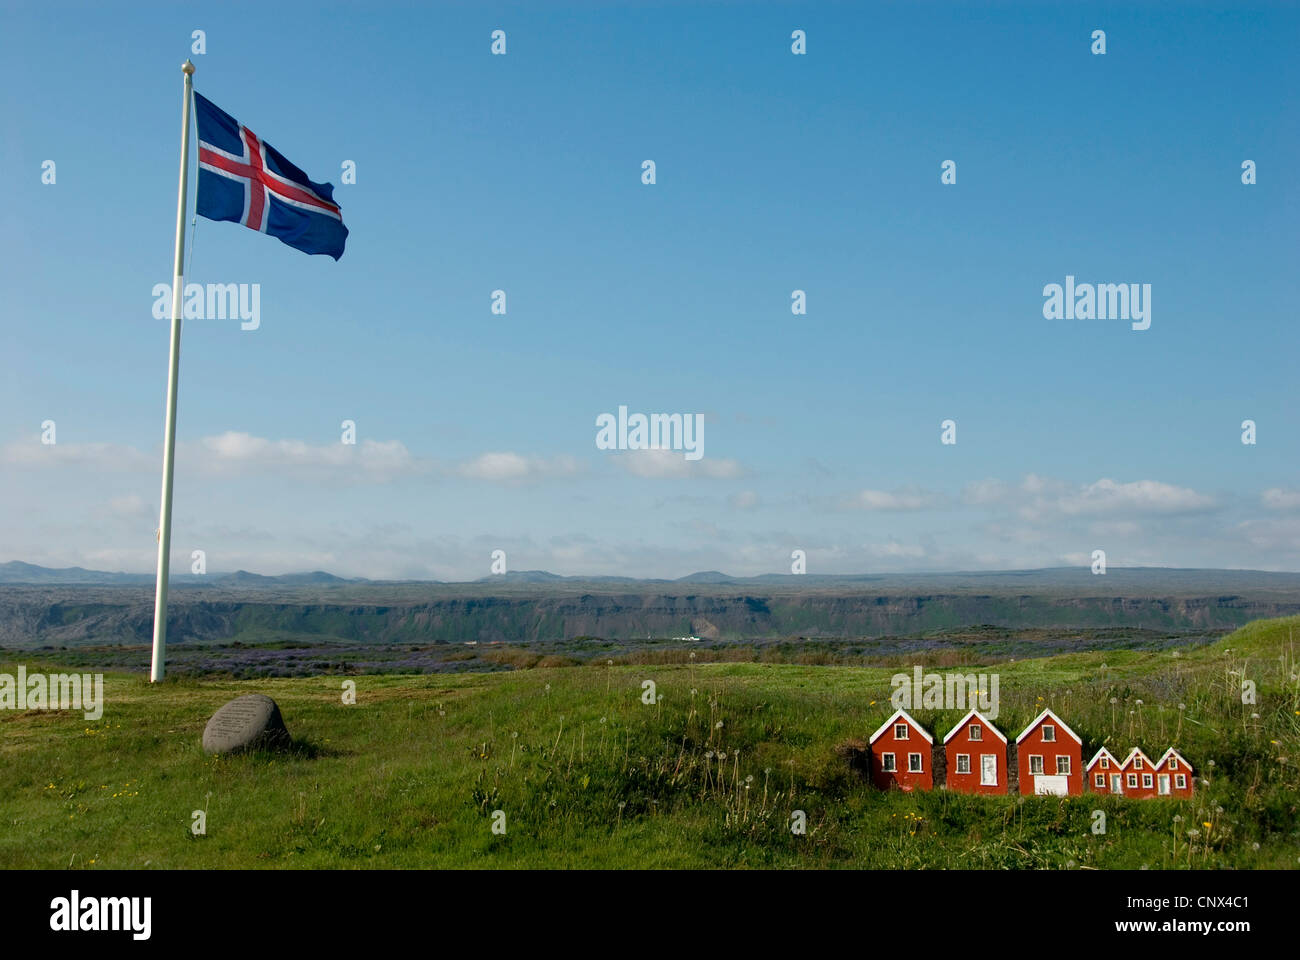 miniature models of sod houses placed in the grass of an elevated plain beside an Icelandic flag, Iceland, Reykjanes - Stock Image